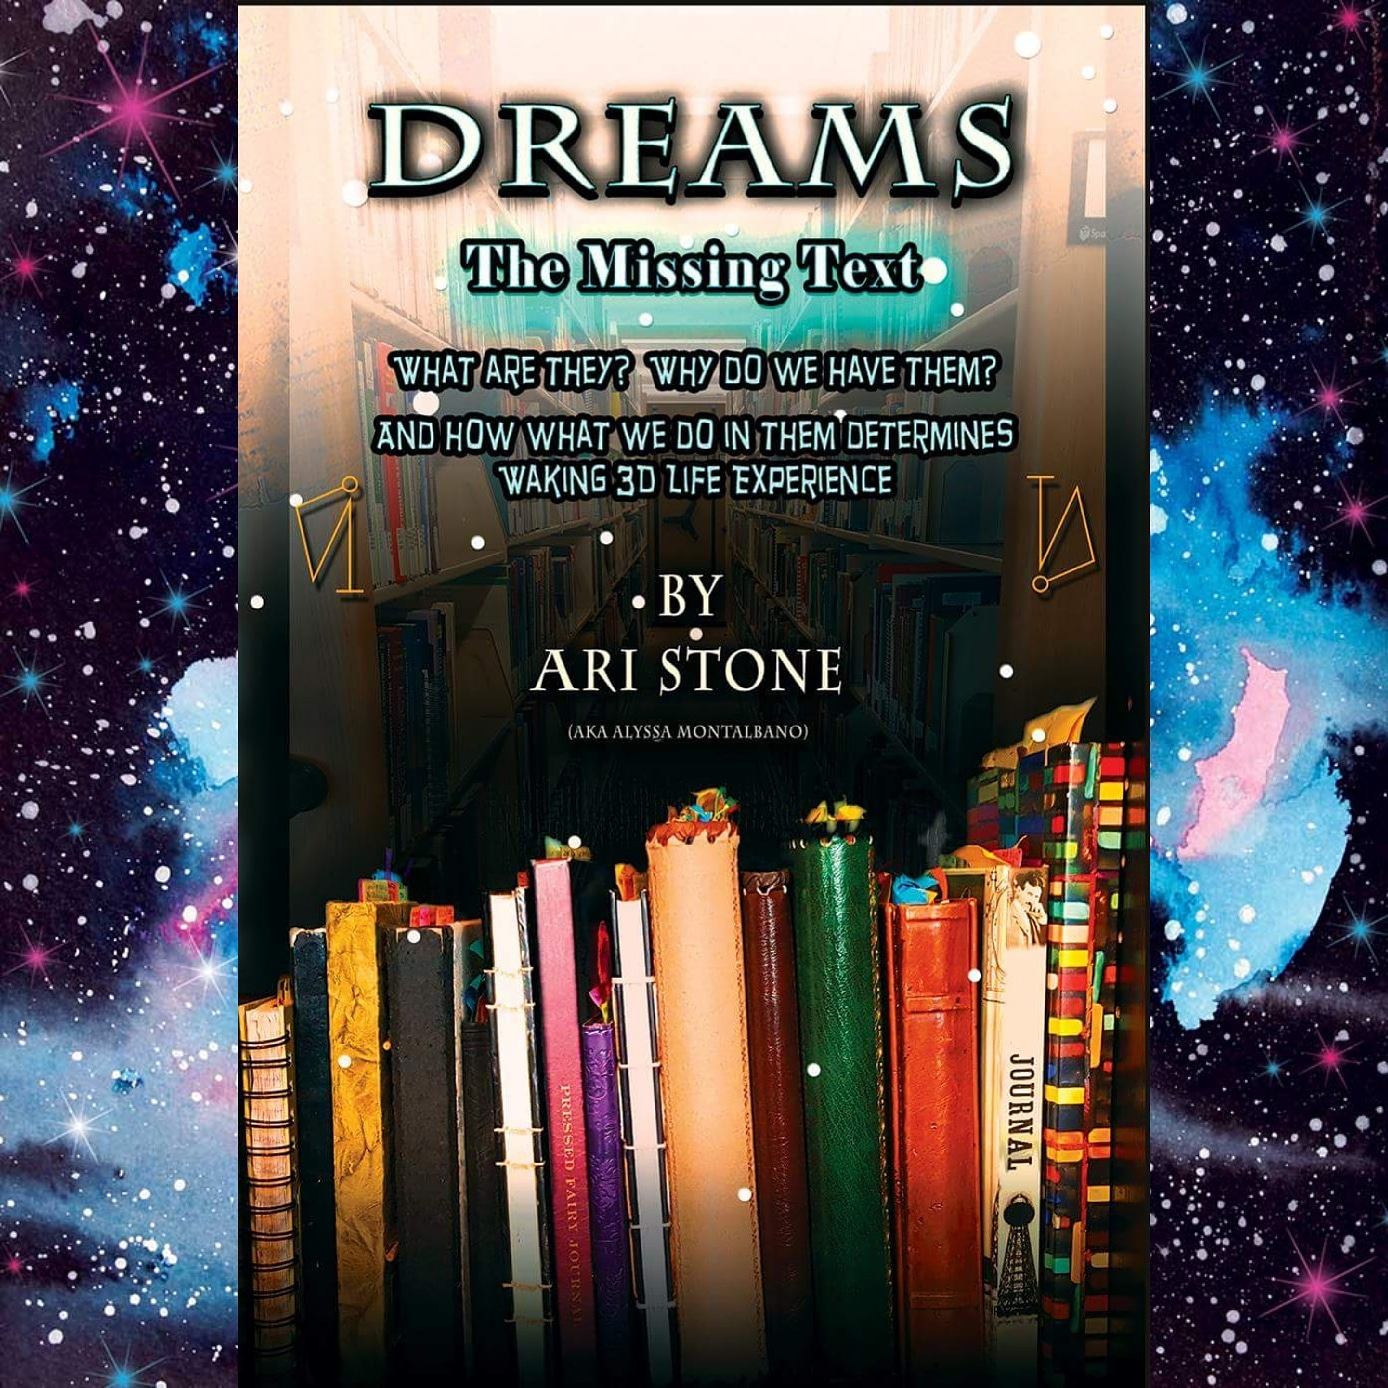 Dreams the Missing Text by Ari Stone